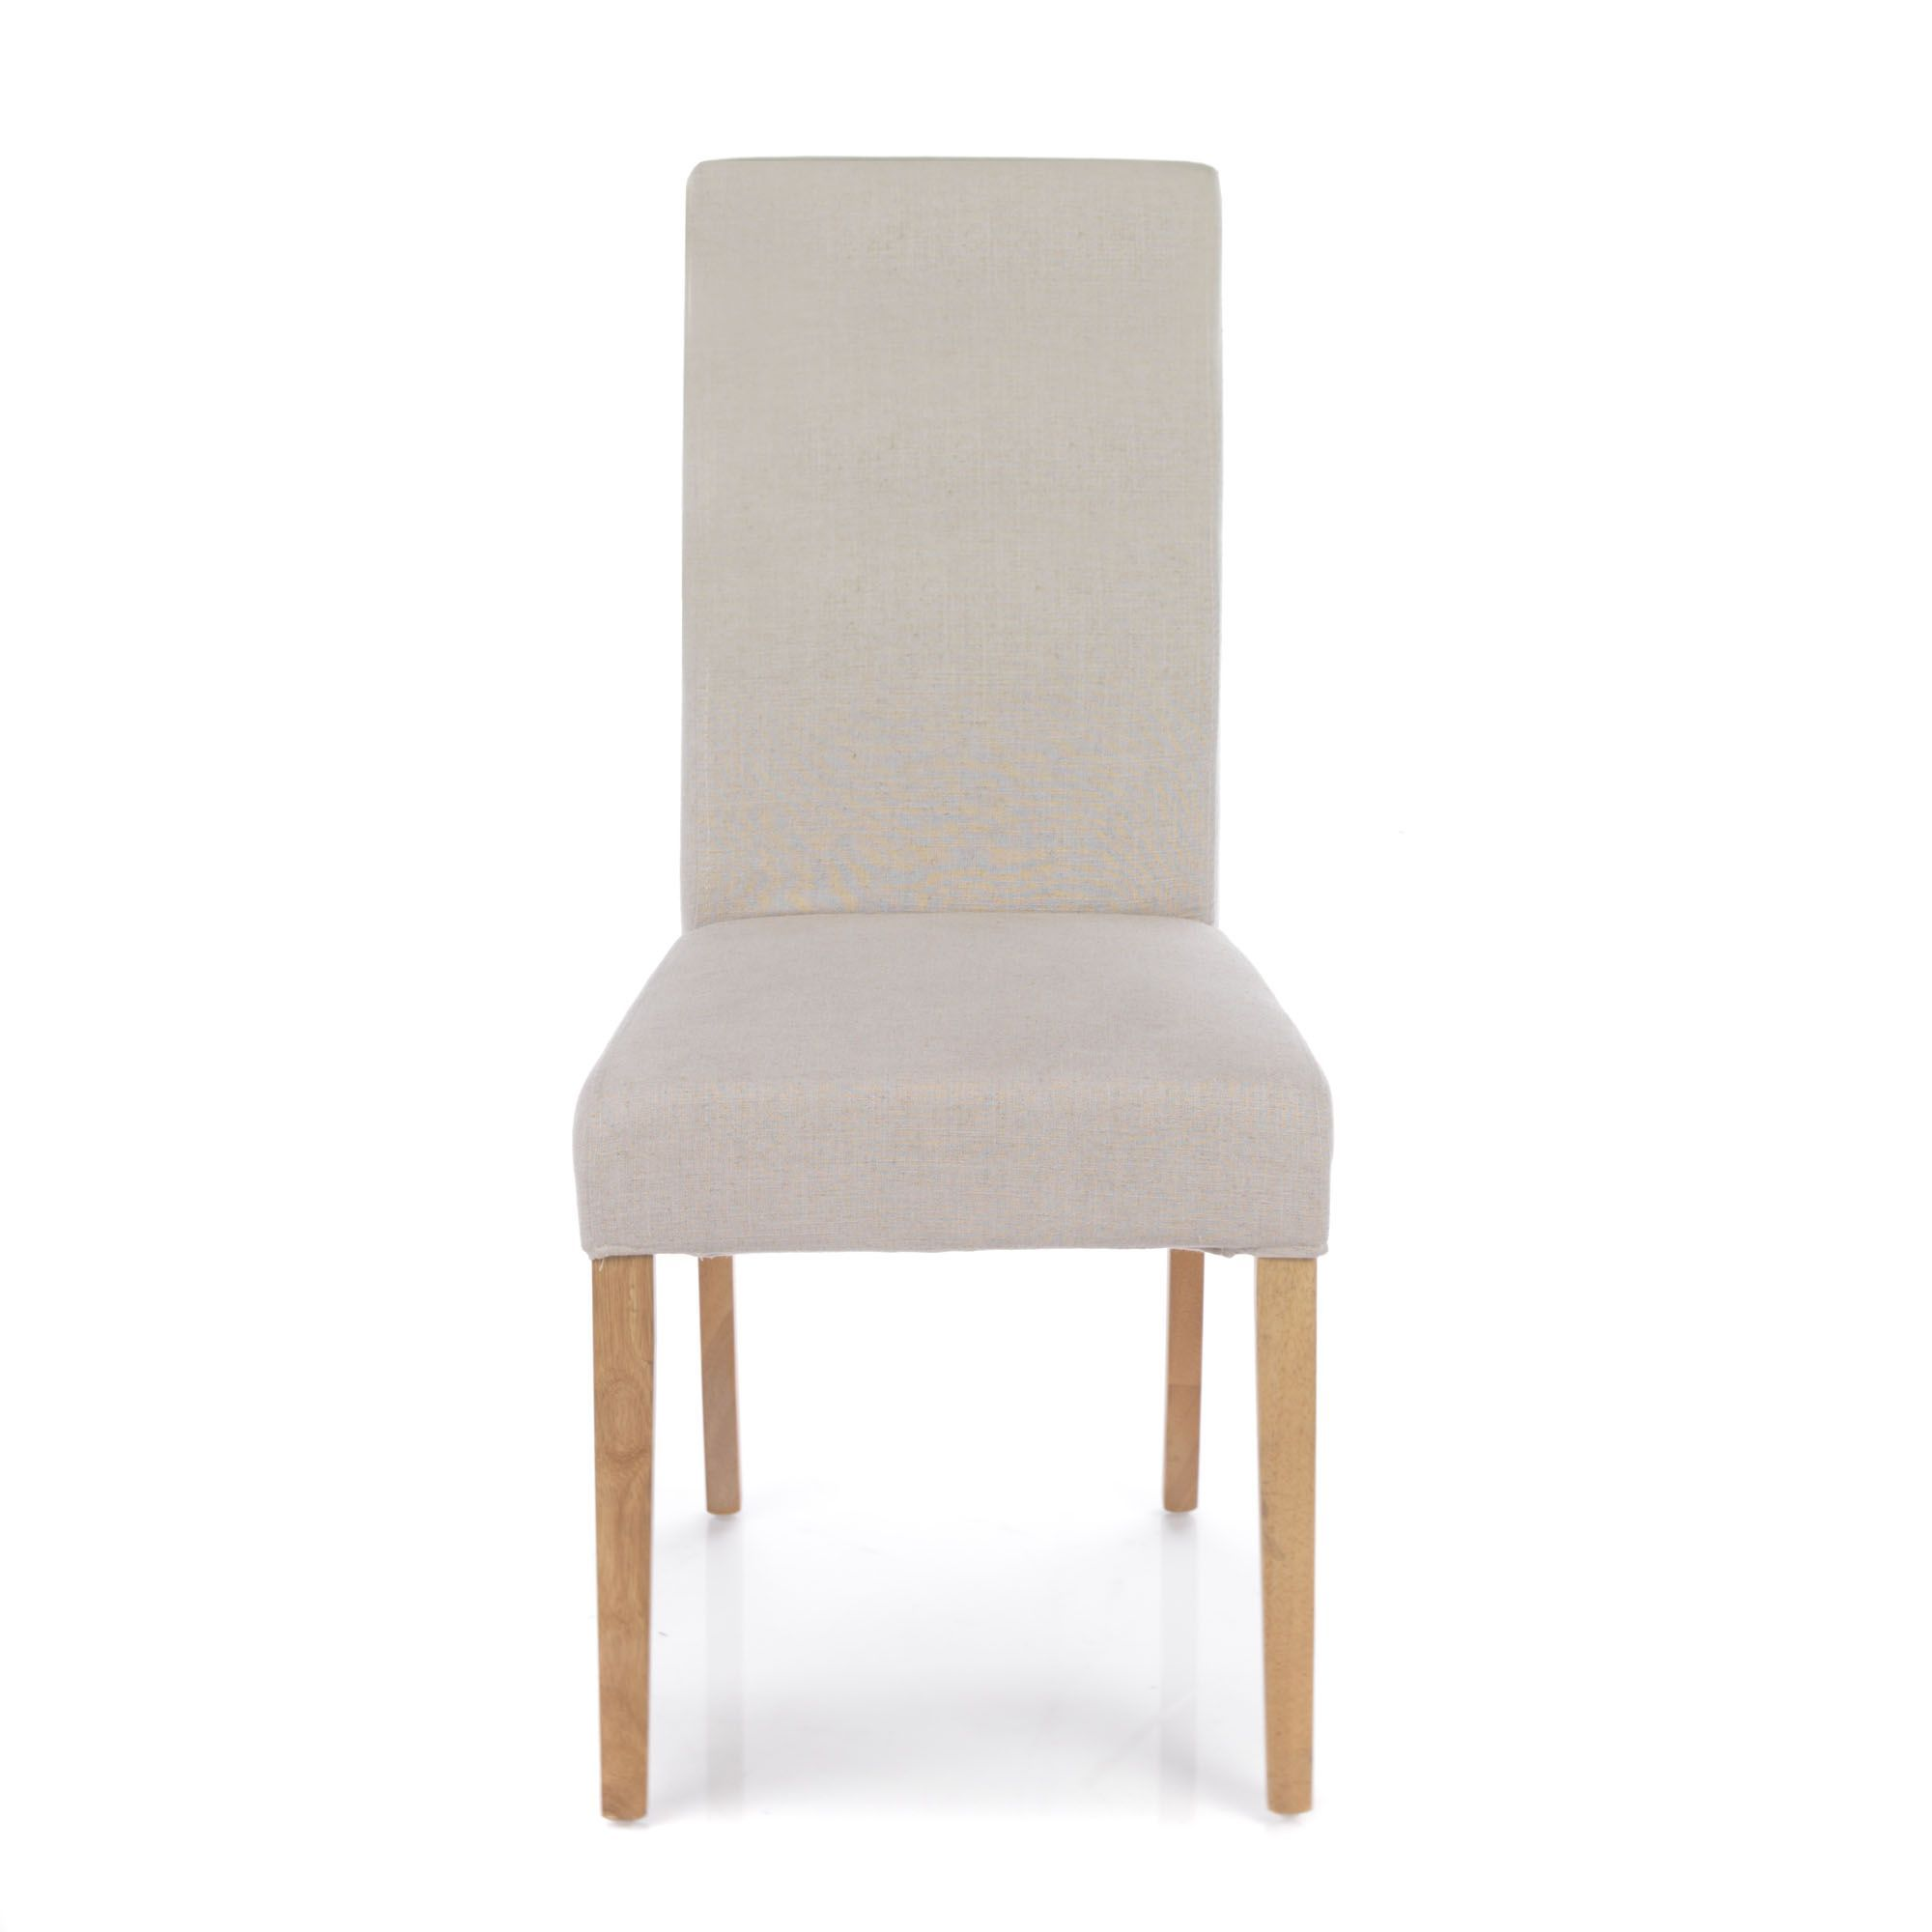 Gallery of chaise dhoussable naturel monroe chaises tables for Table chaise alinea